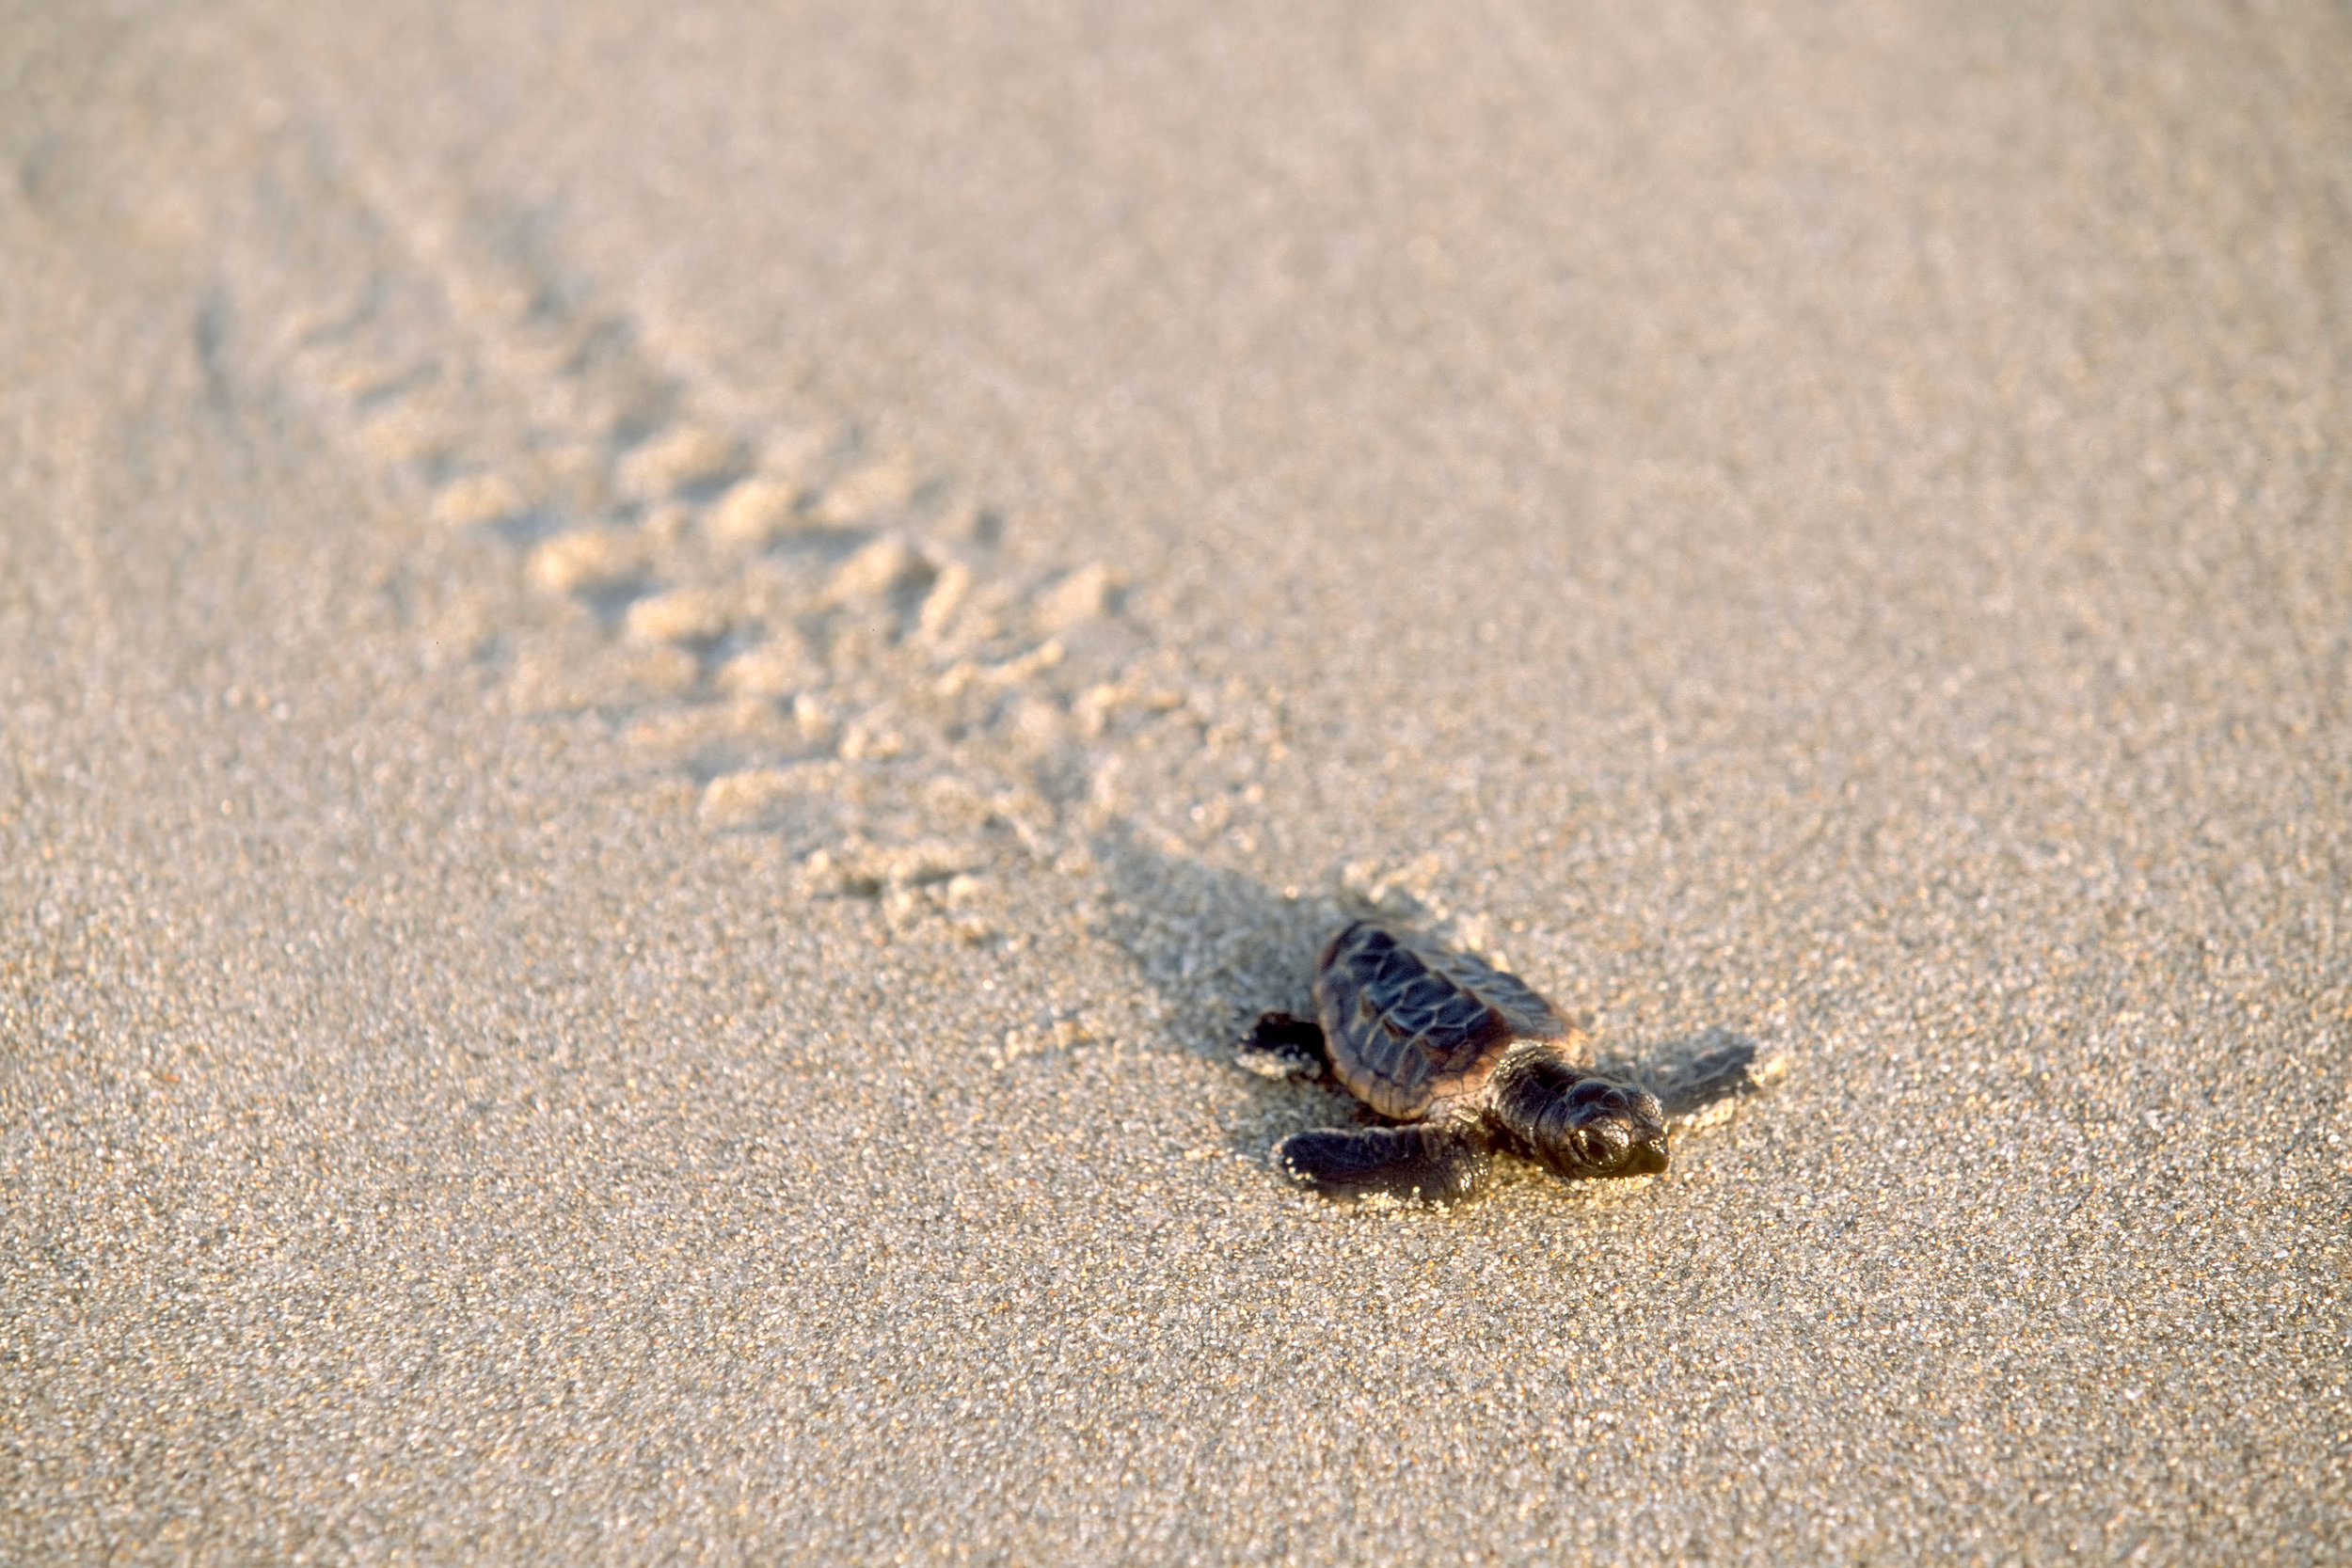 Loggerhead hatchling on its way to the ocean